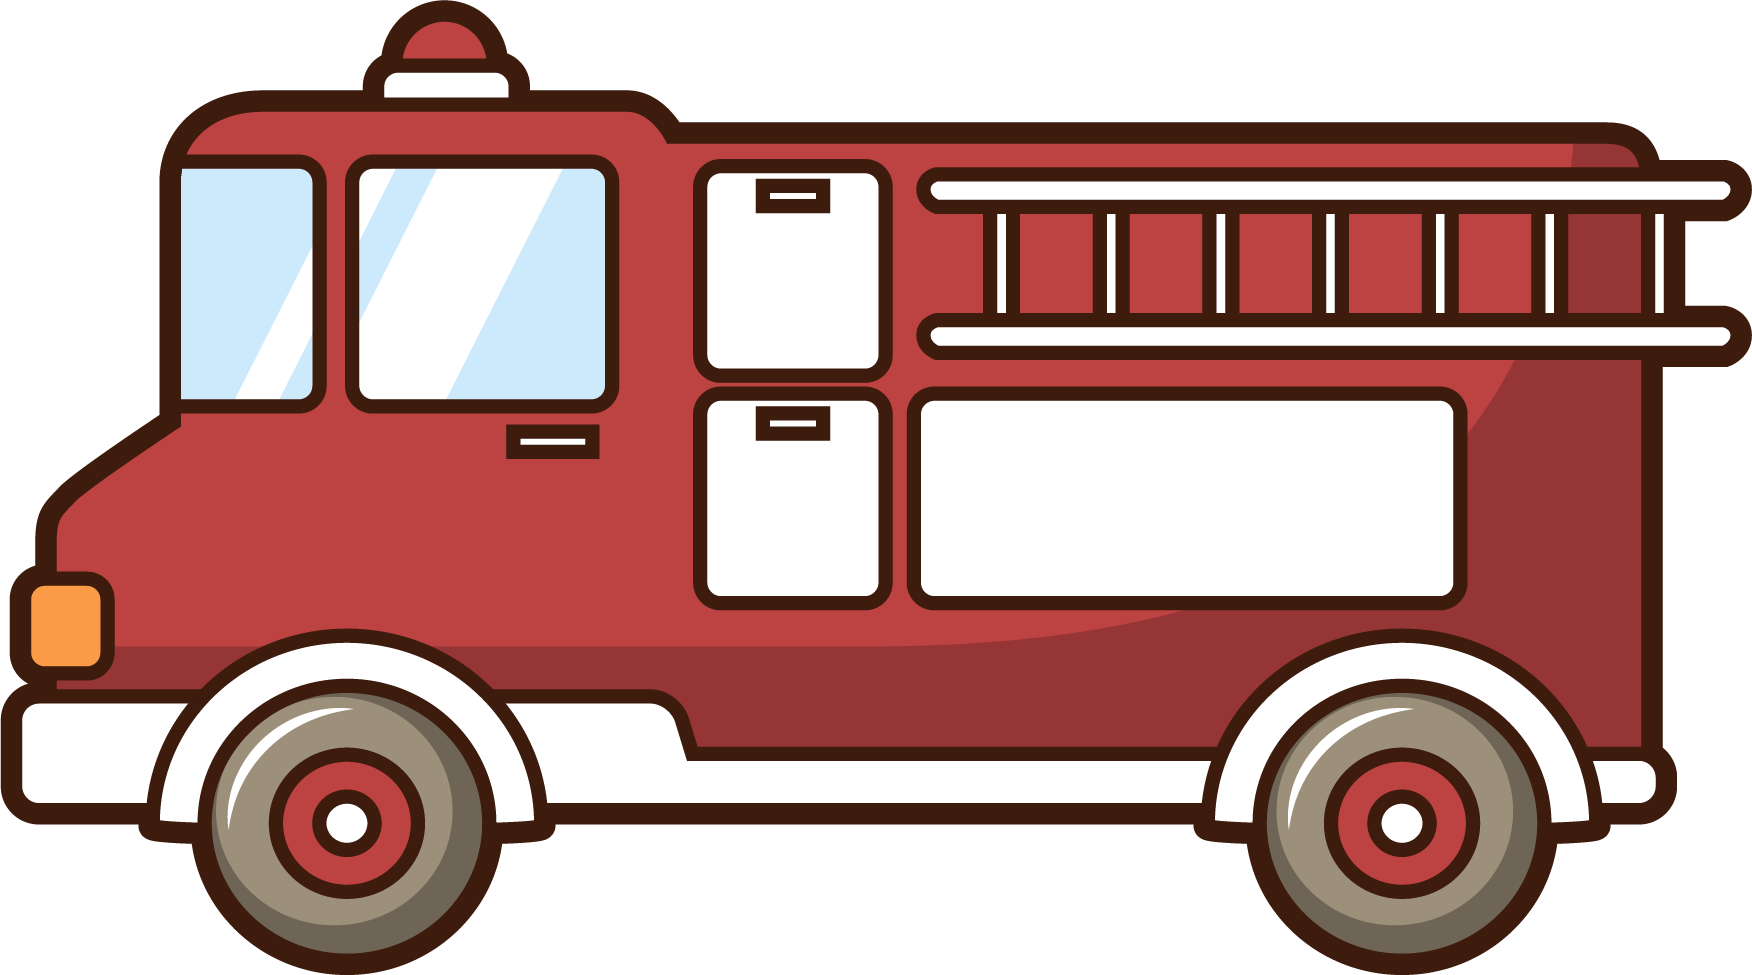 Firefighter clipart vehicle.